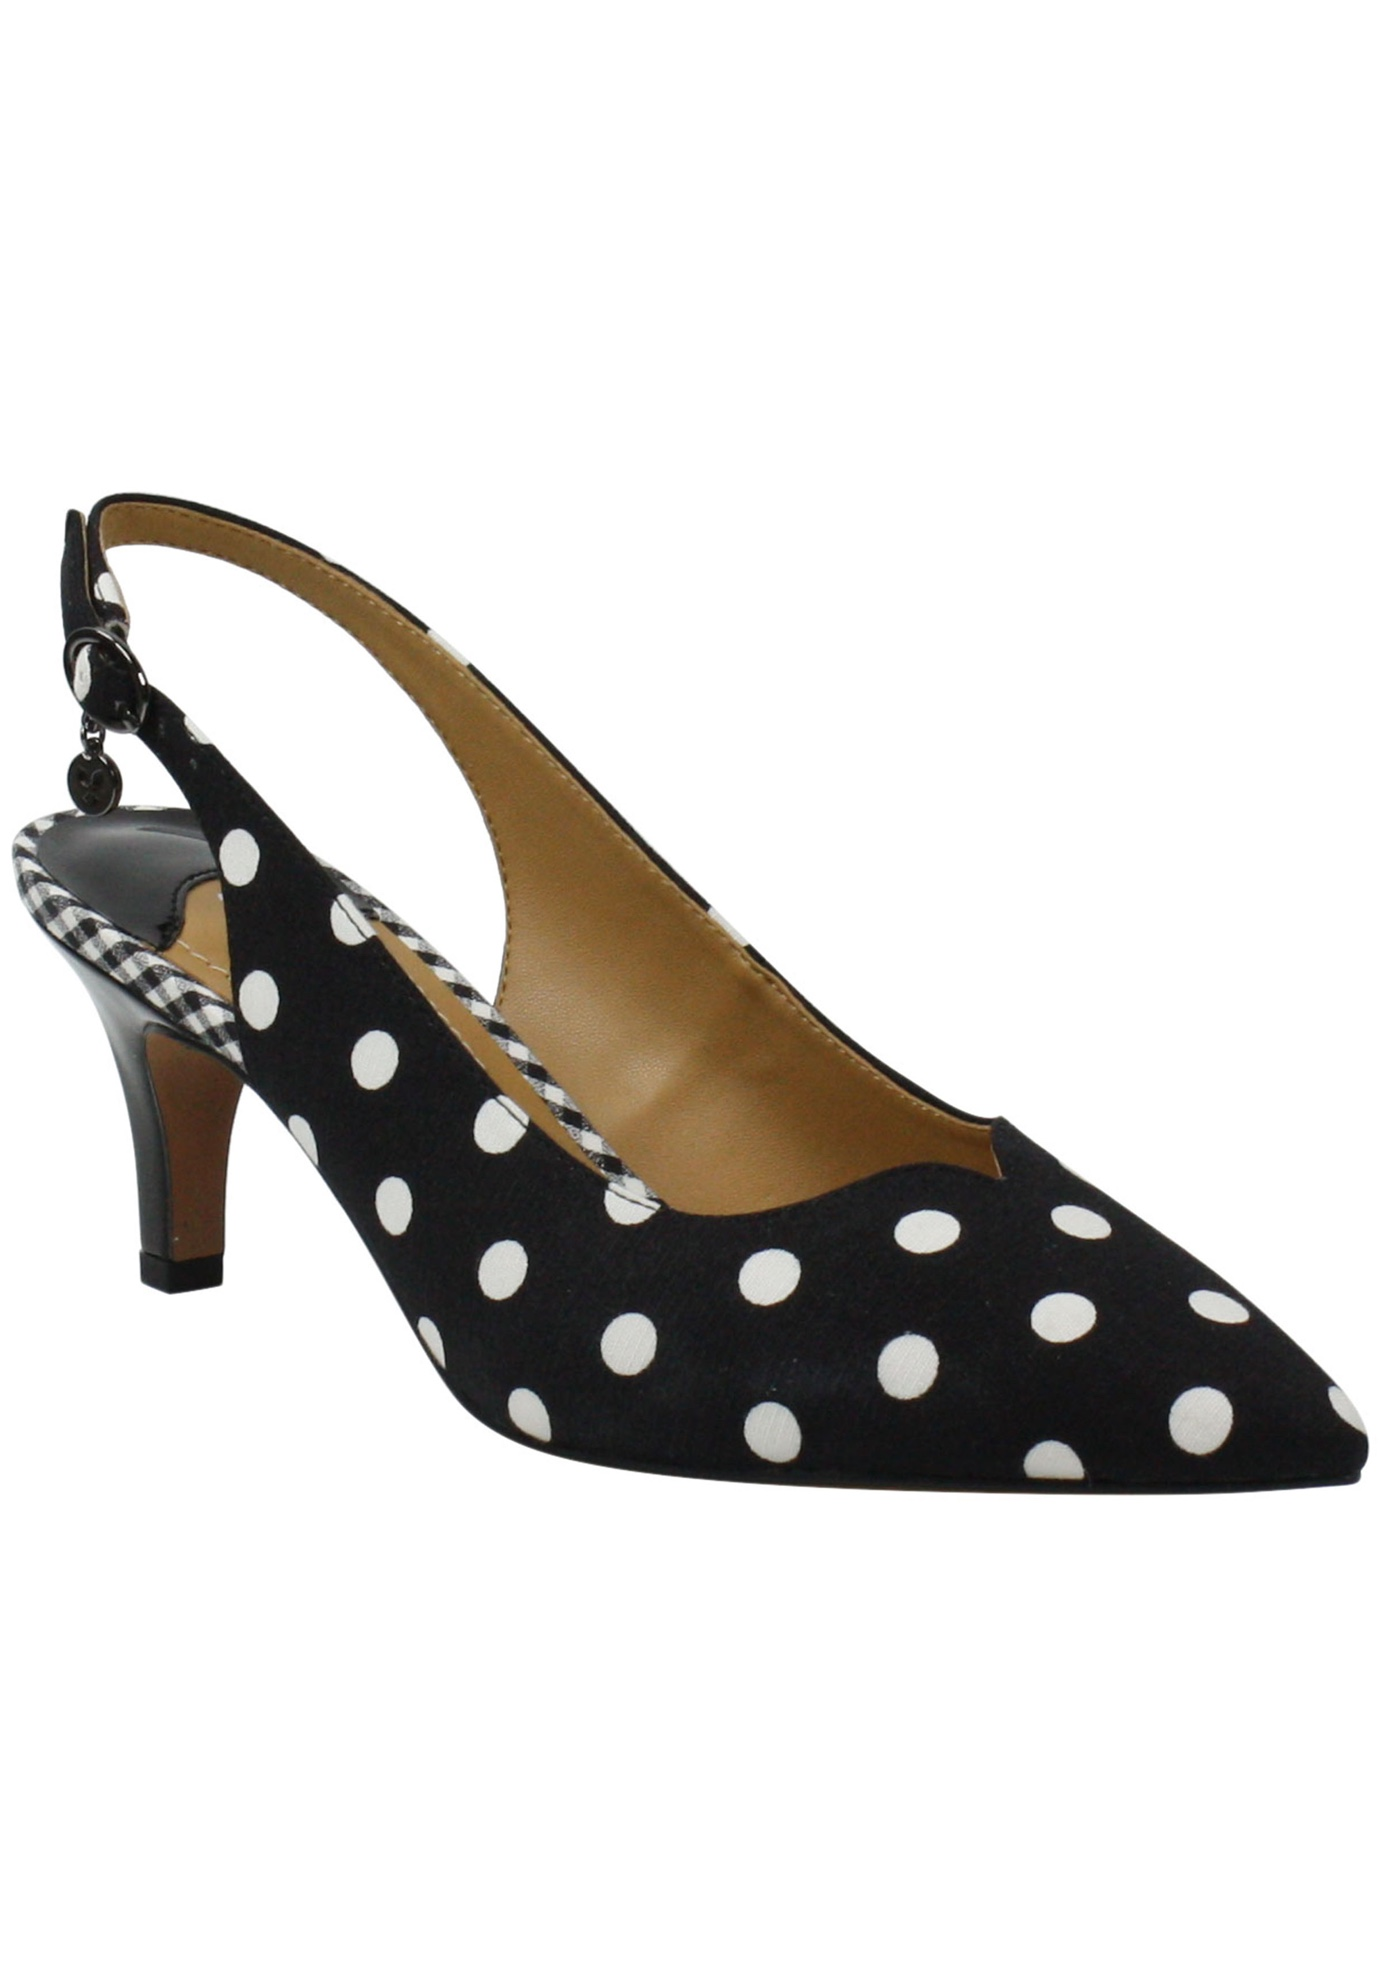 Envizyn Pumps by J. Renee',